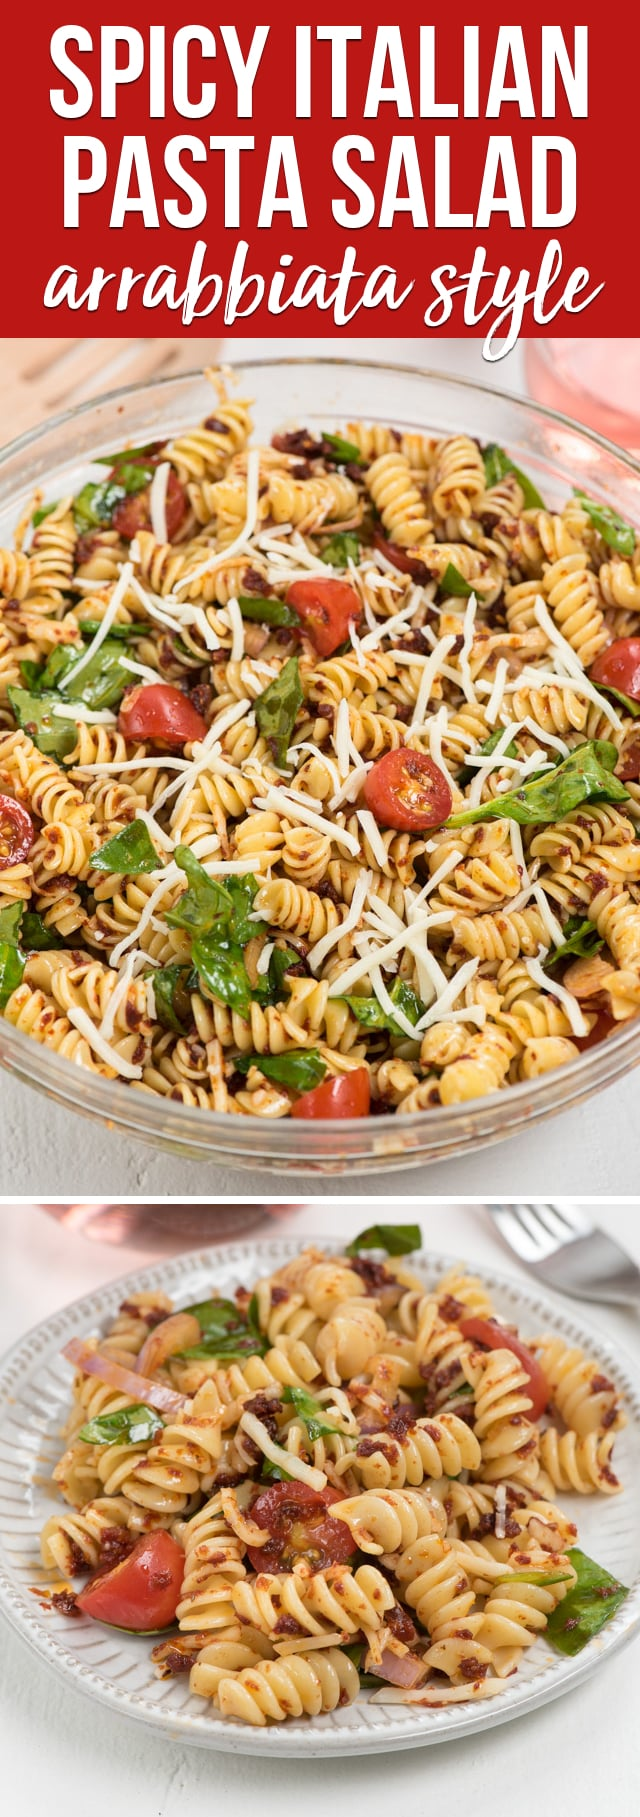 This Spicy Italian Pasta Salad needs to be your go to pasta salad recipe for summer! Coated with a spicy sun-dried tomato pesto, it's the perfect recipe to pair with a sweet wine.